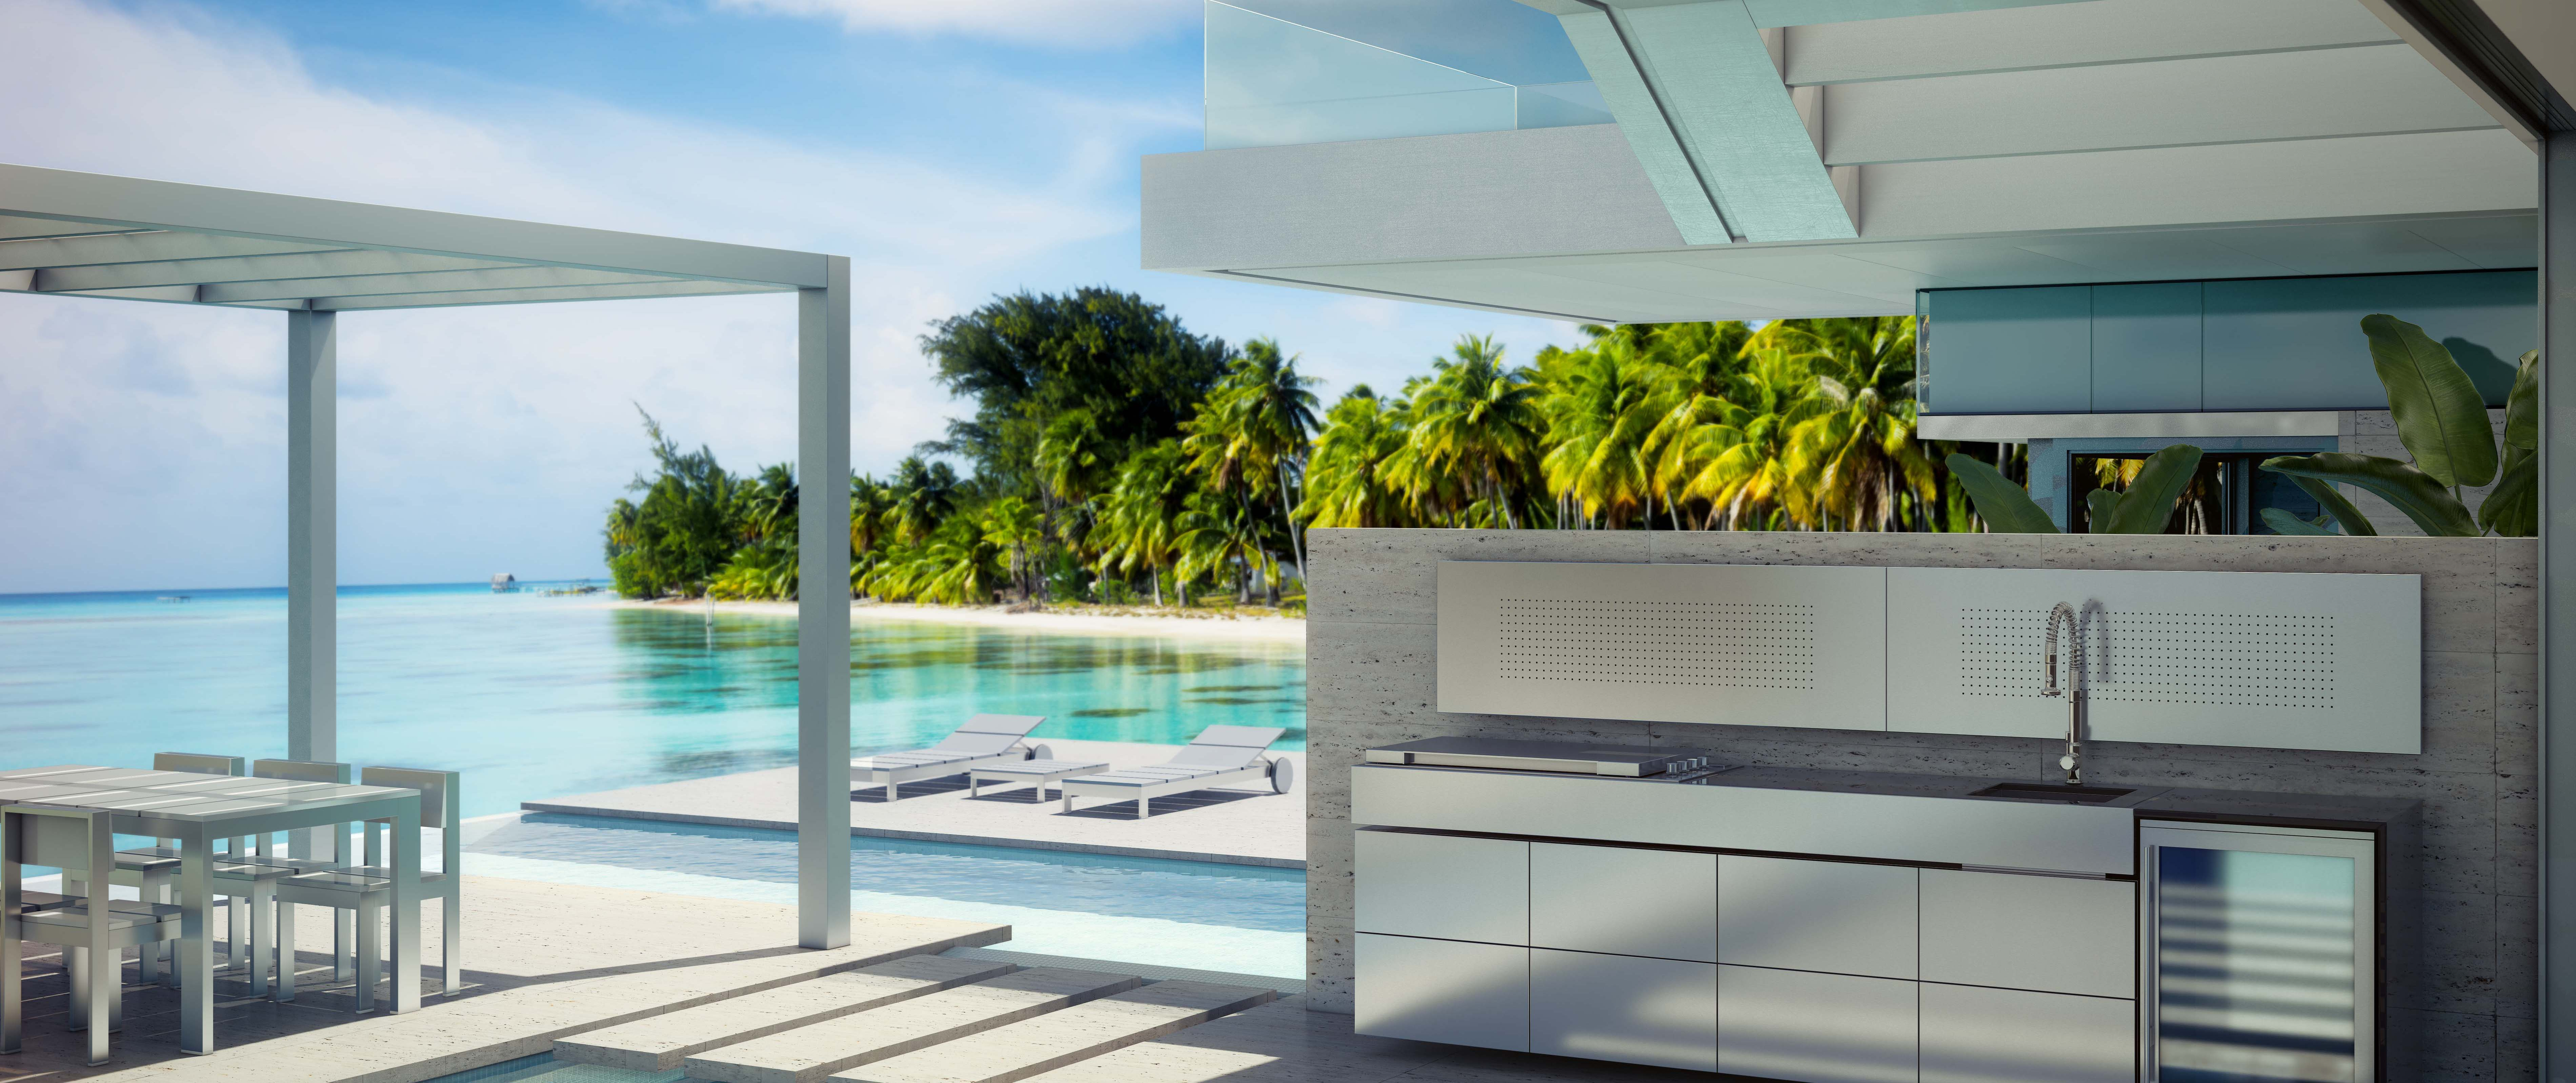 How To Build The Ultimate Outdoor Kitchen